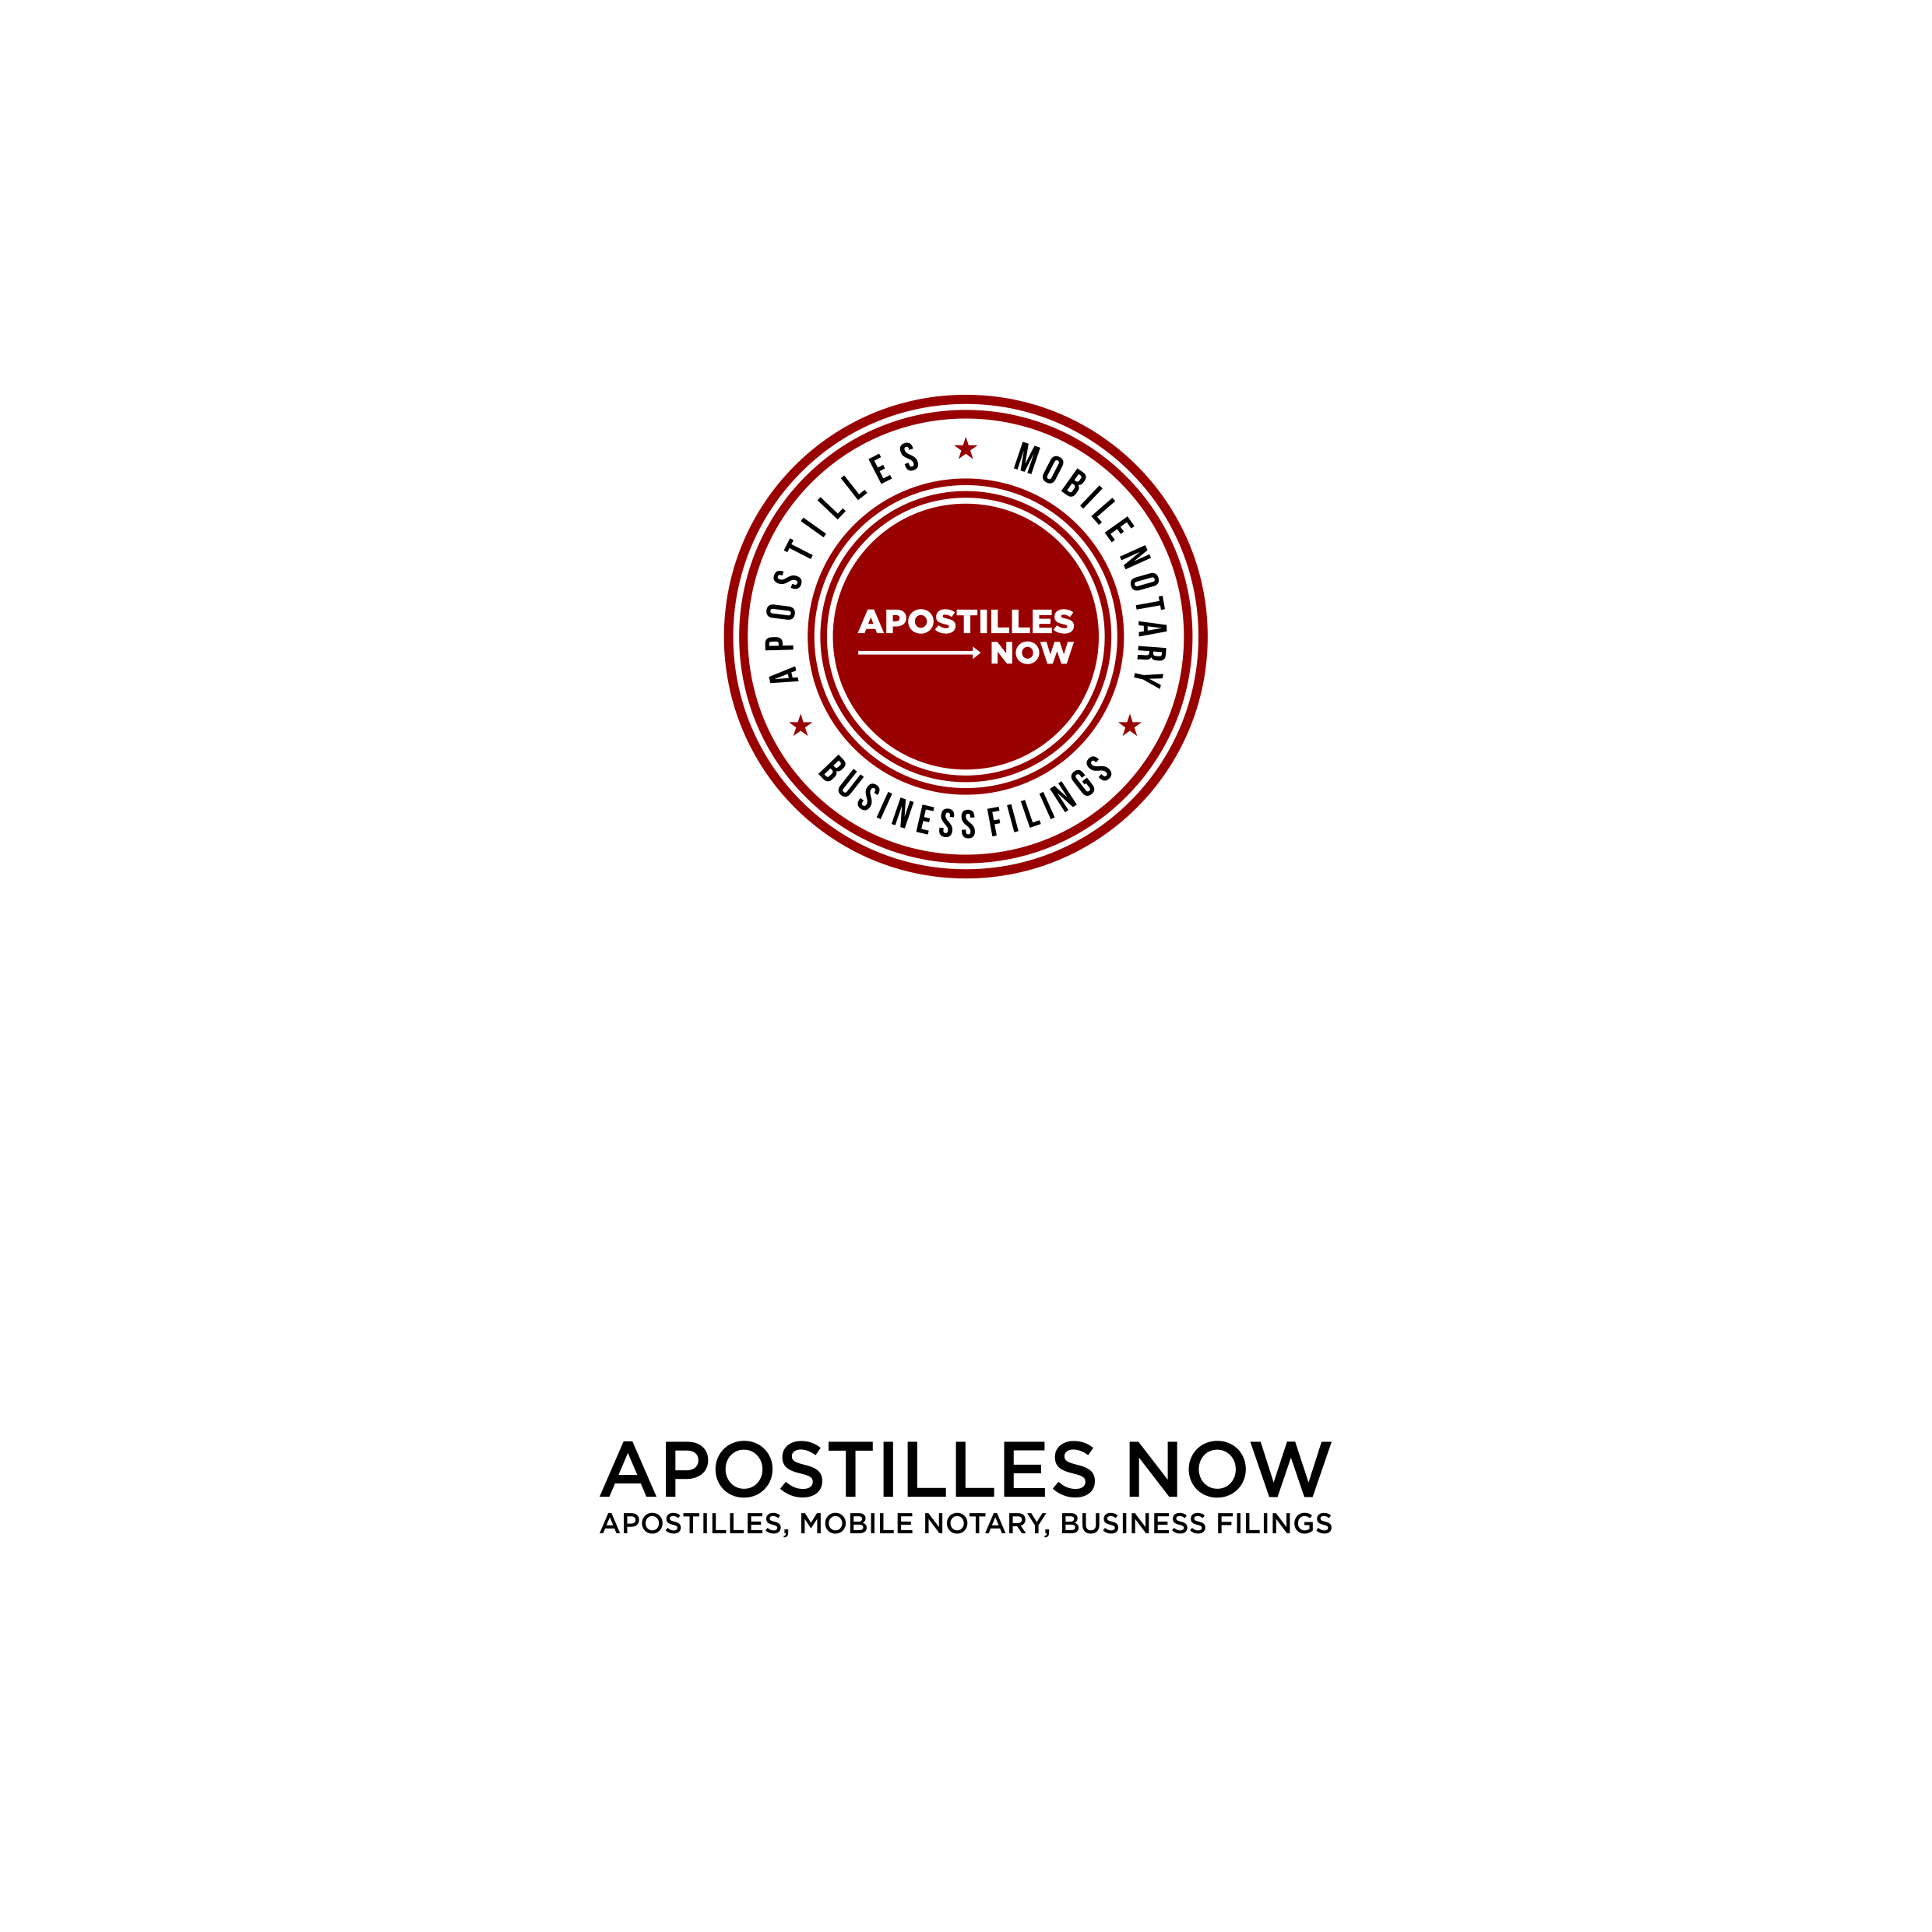 Design a compelling logo for an Apostille/Mobile Notary business